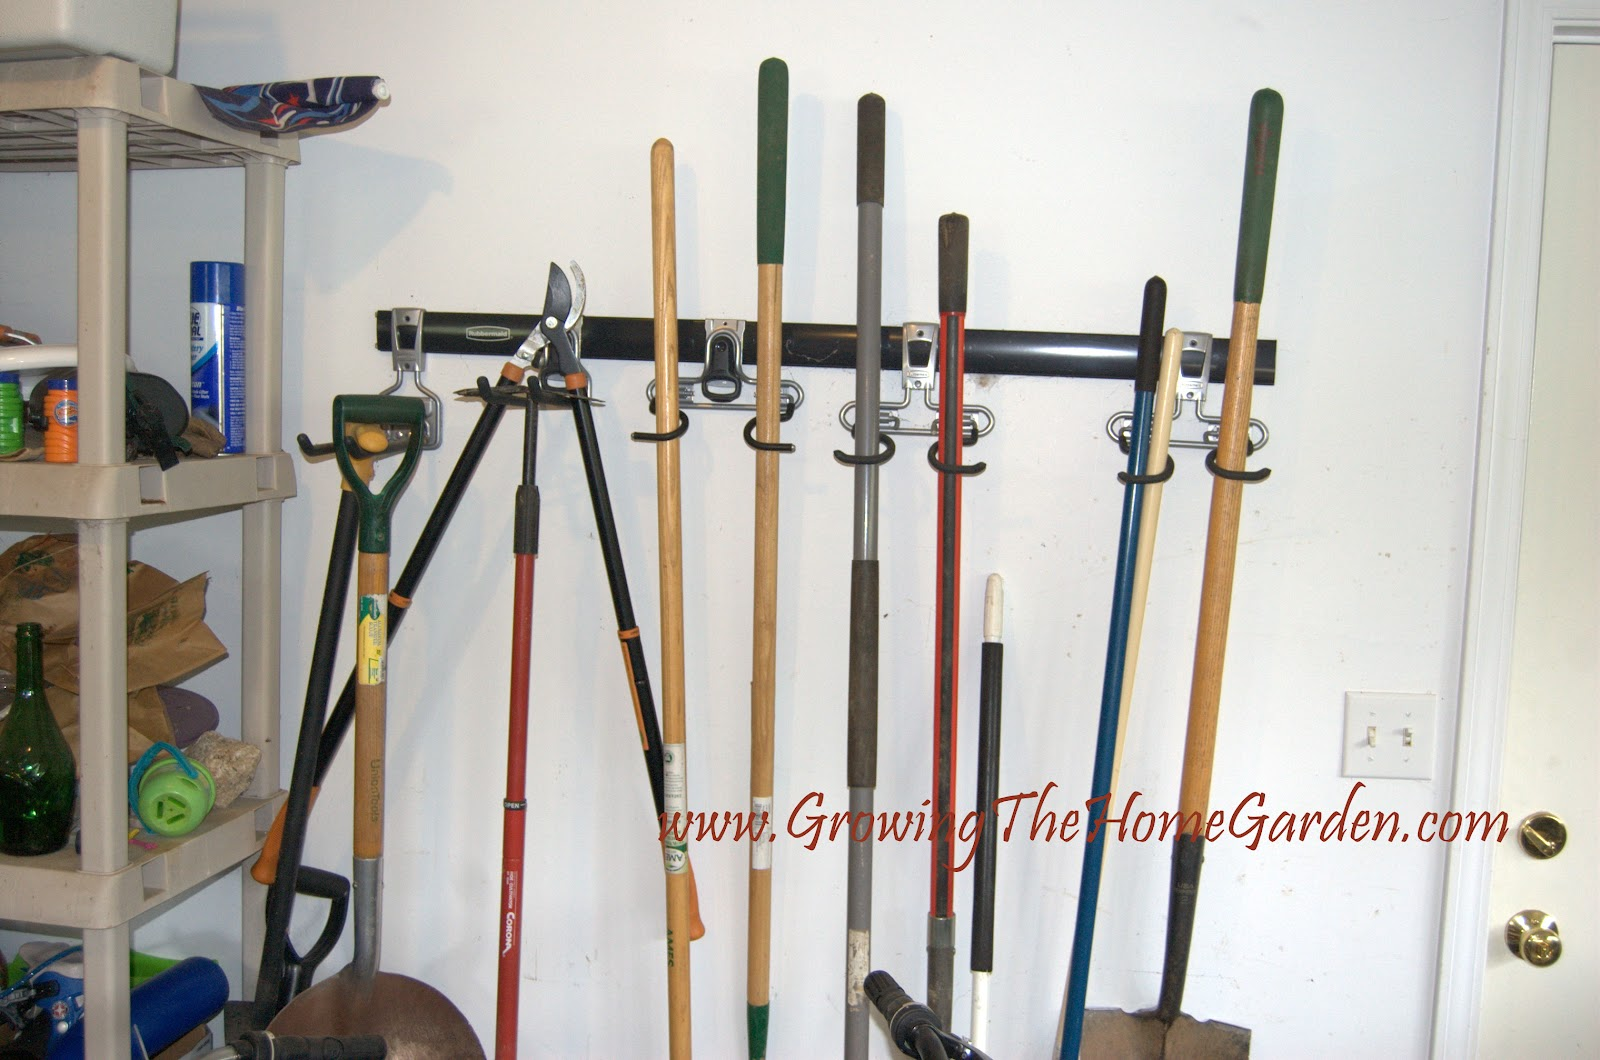 Organizing a gardeners garage growing the home garden for Gardening tools brisbane